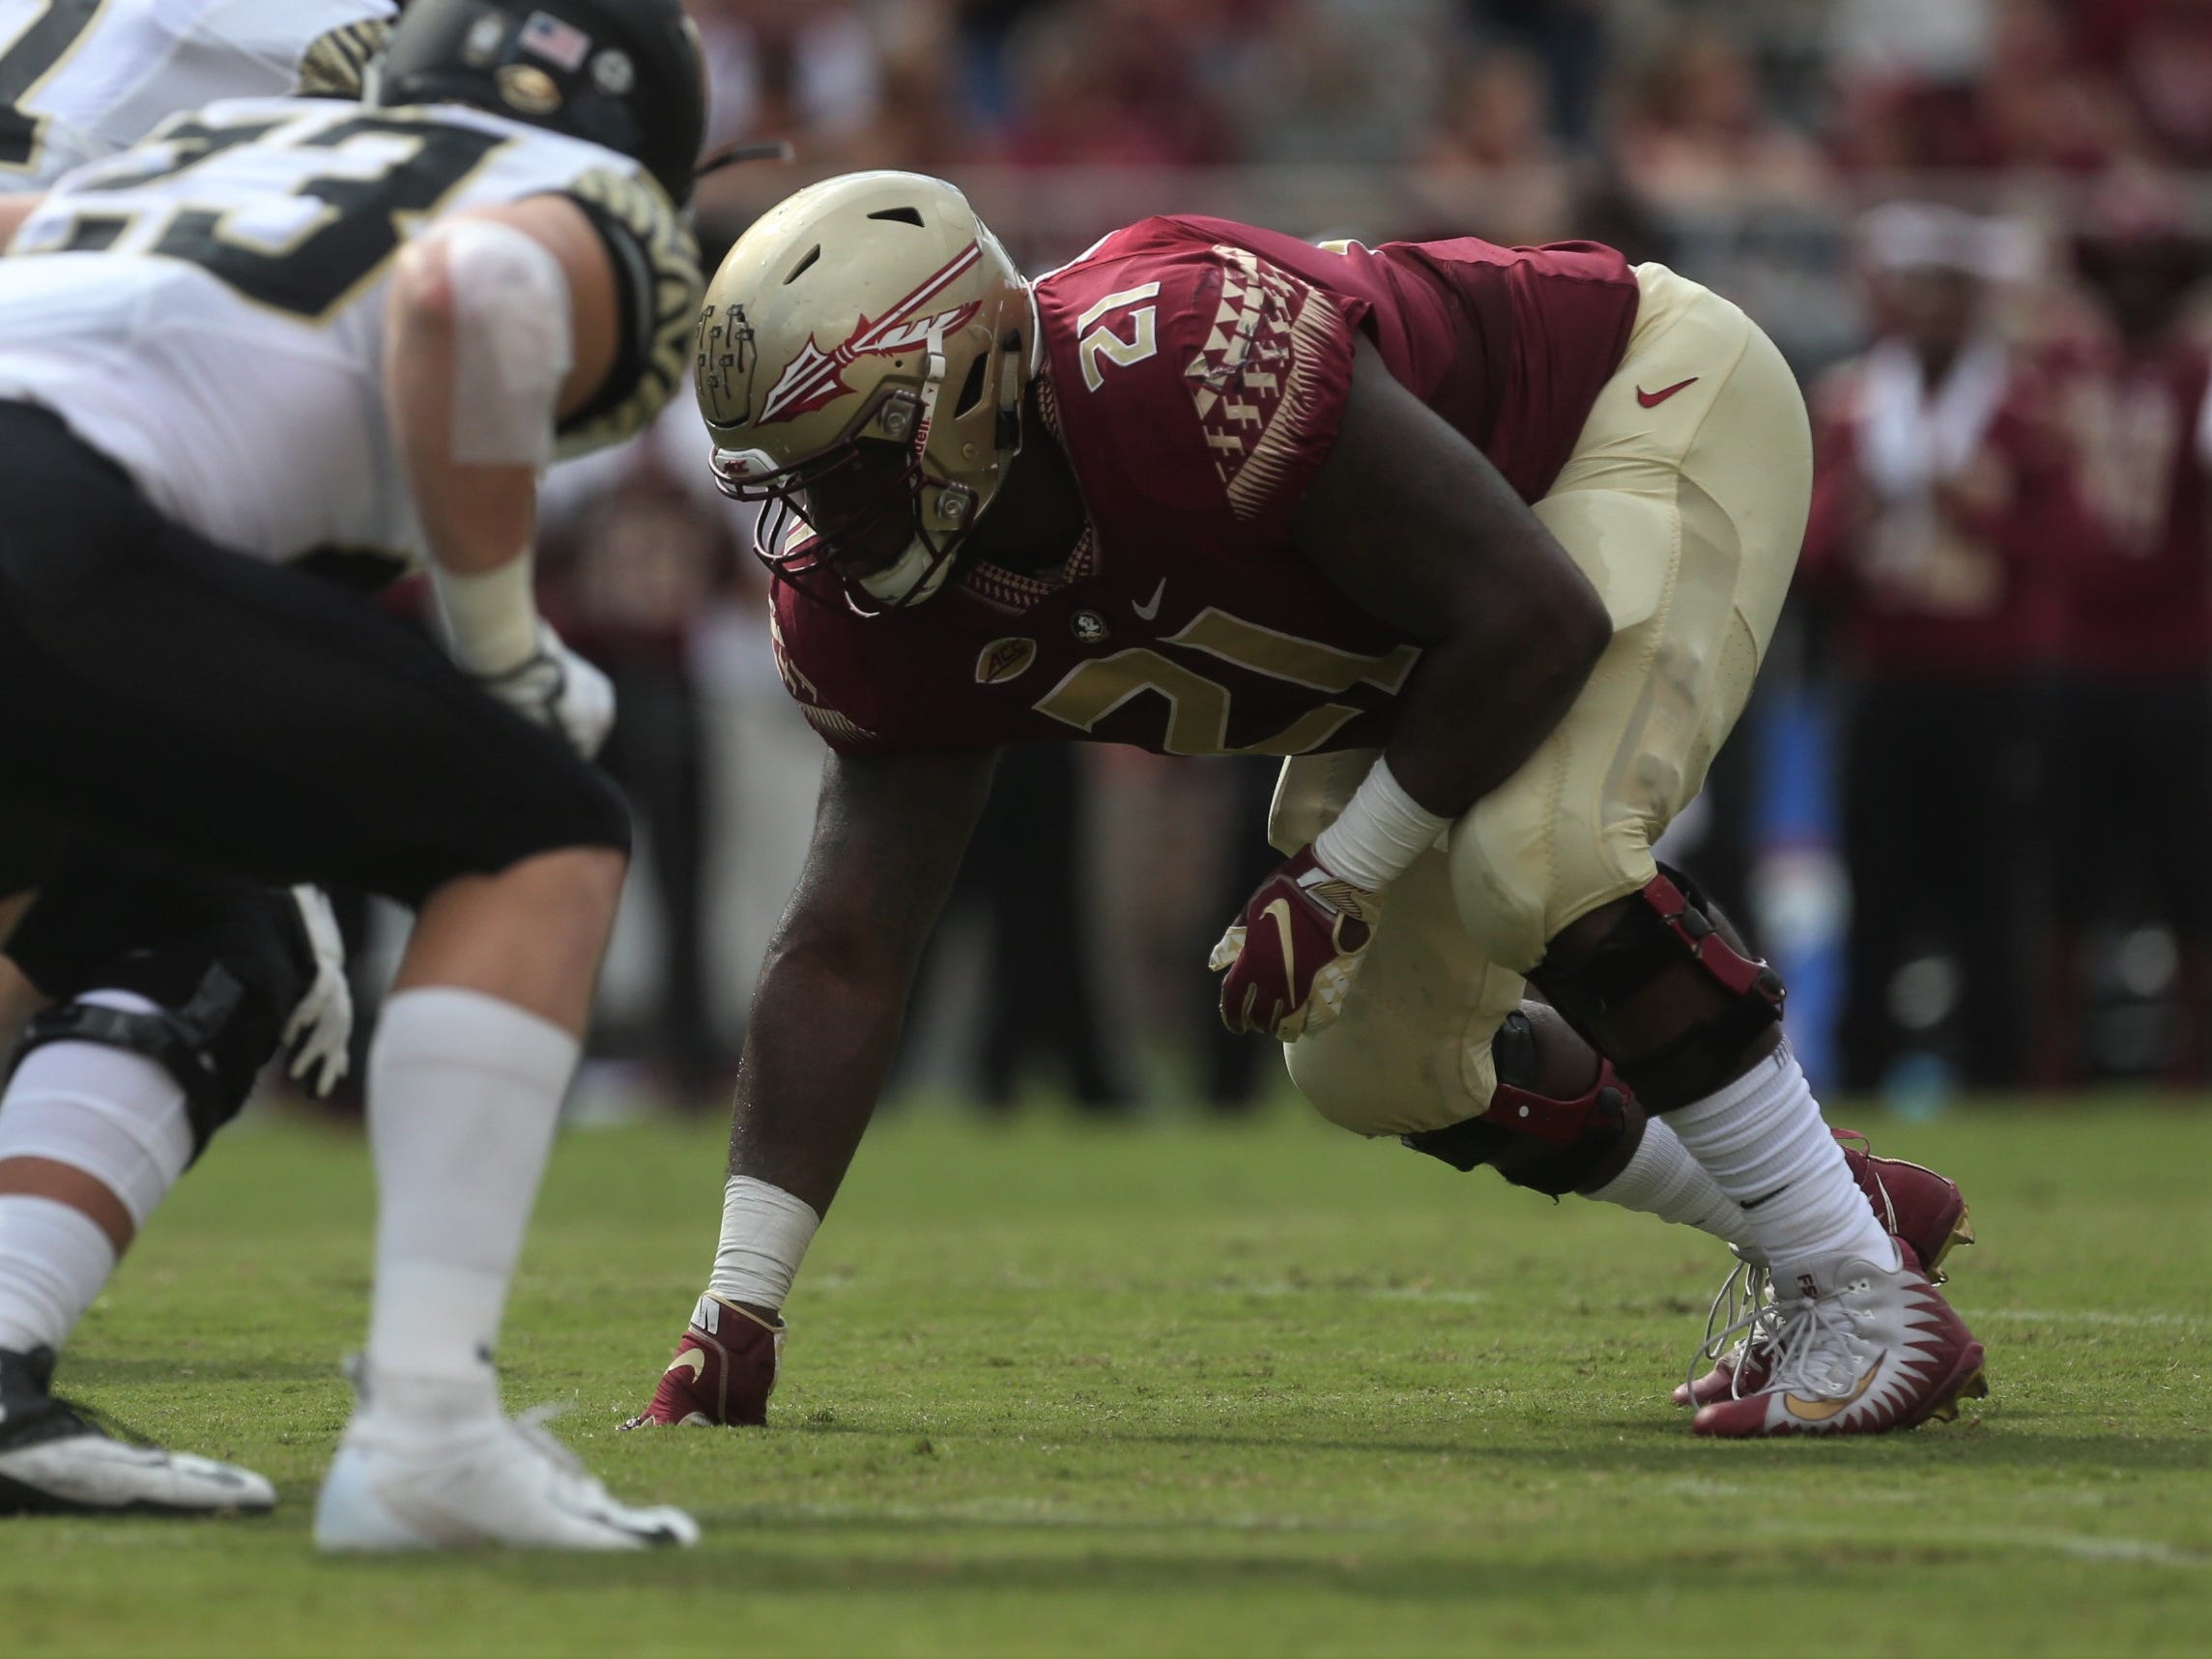 Florida State defensive tackle Marvin Wilson prepares for a Wake Forest snap during a game at Doak Campbell Stadium on Saturday, Oct. 20, 2018.